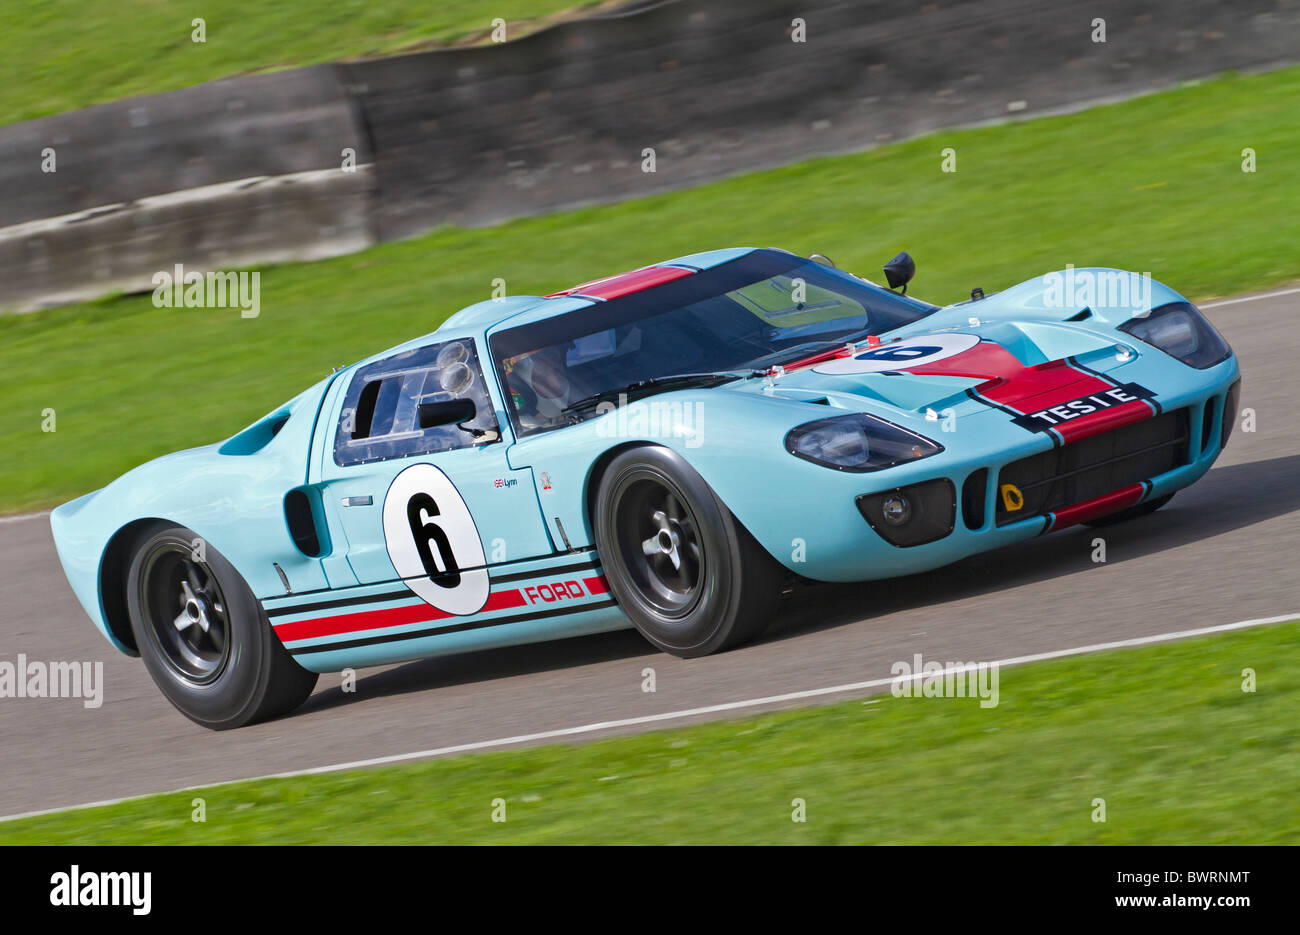 1965 Ford GT40 with driver Shaun Lynn during the Whitsun Trophy race. 2010 Goodwood Revival, Sussex, England, UK - Stock Image